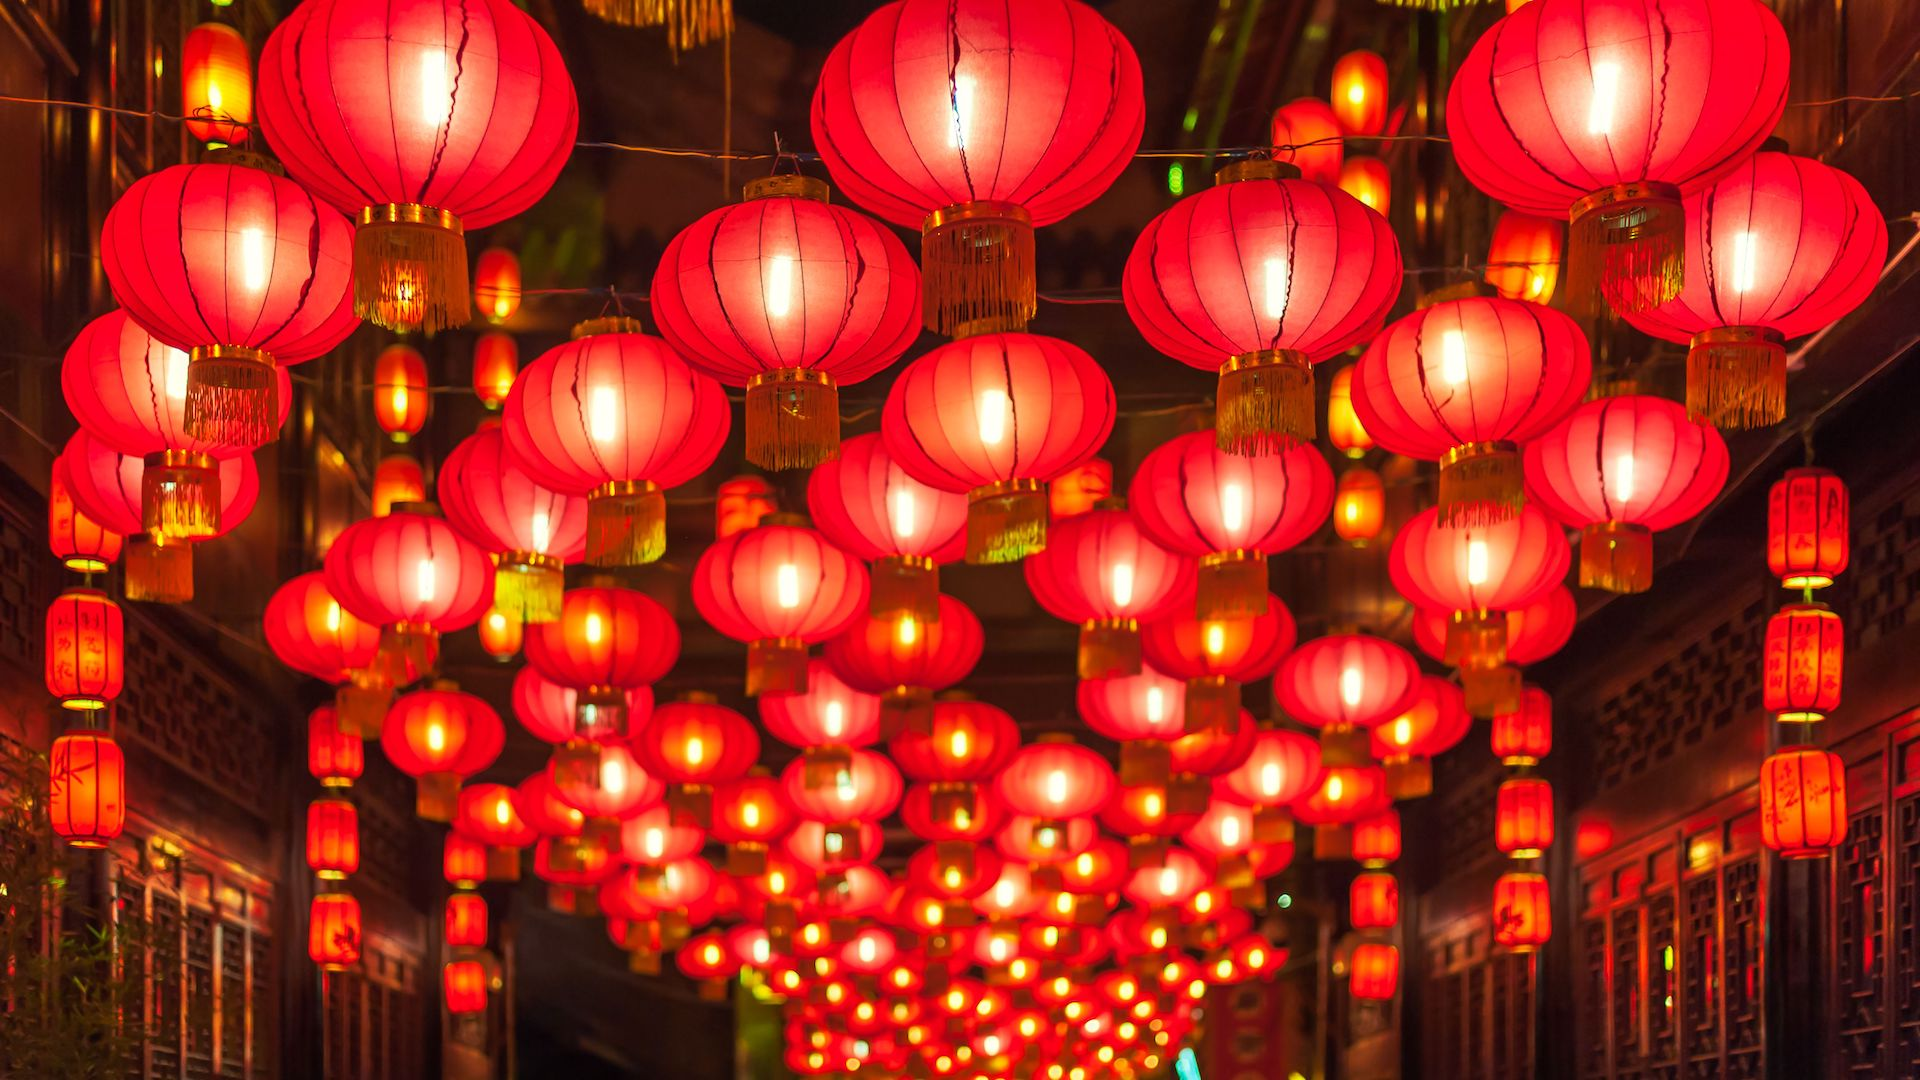 Many red traditional Chinese lanterns hanging above the middle of a small Chinese town walkway